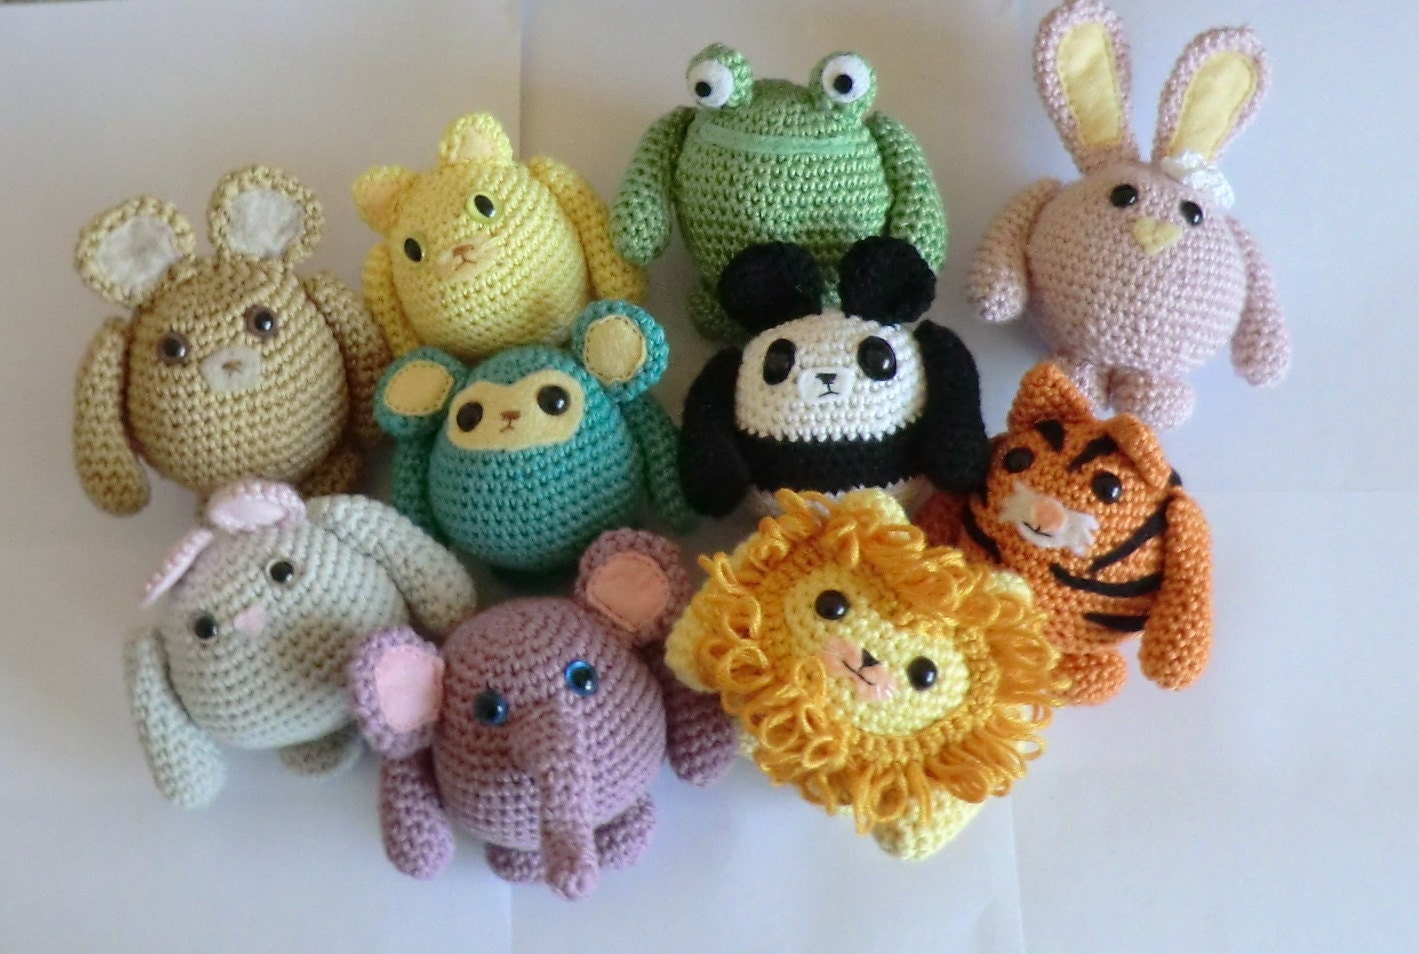 Crochet Animals : Fat friends animal amigurumi crochet patterns by AmigurumiBarmy